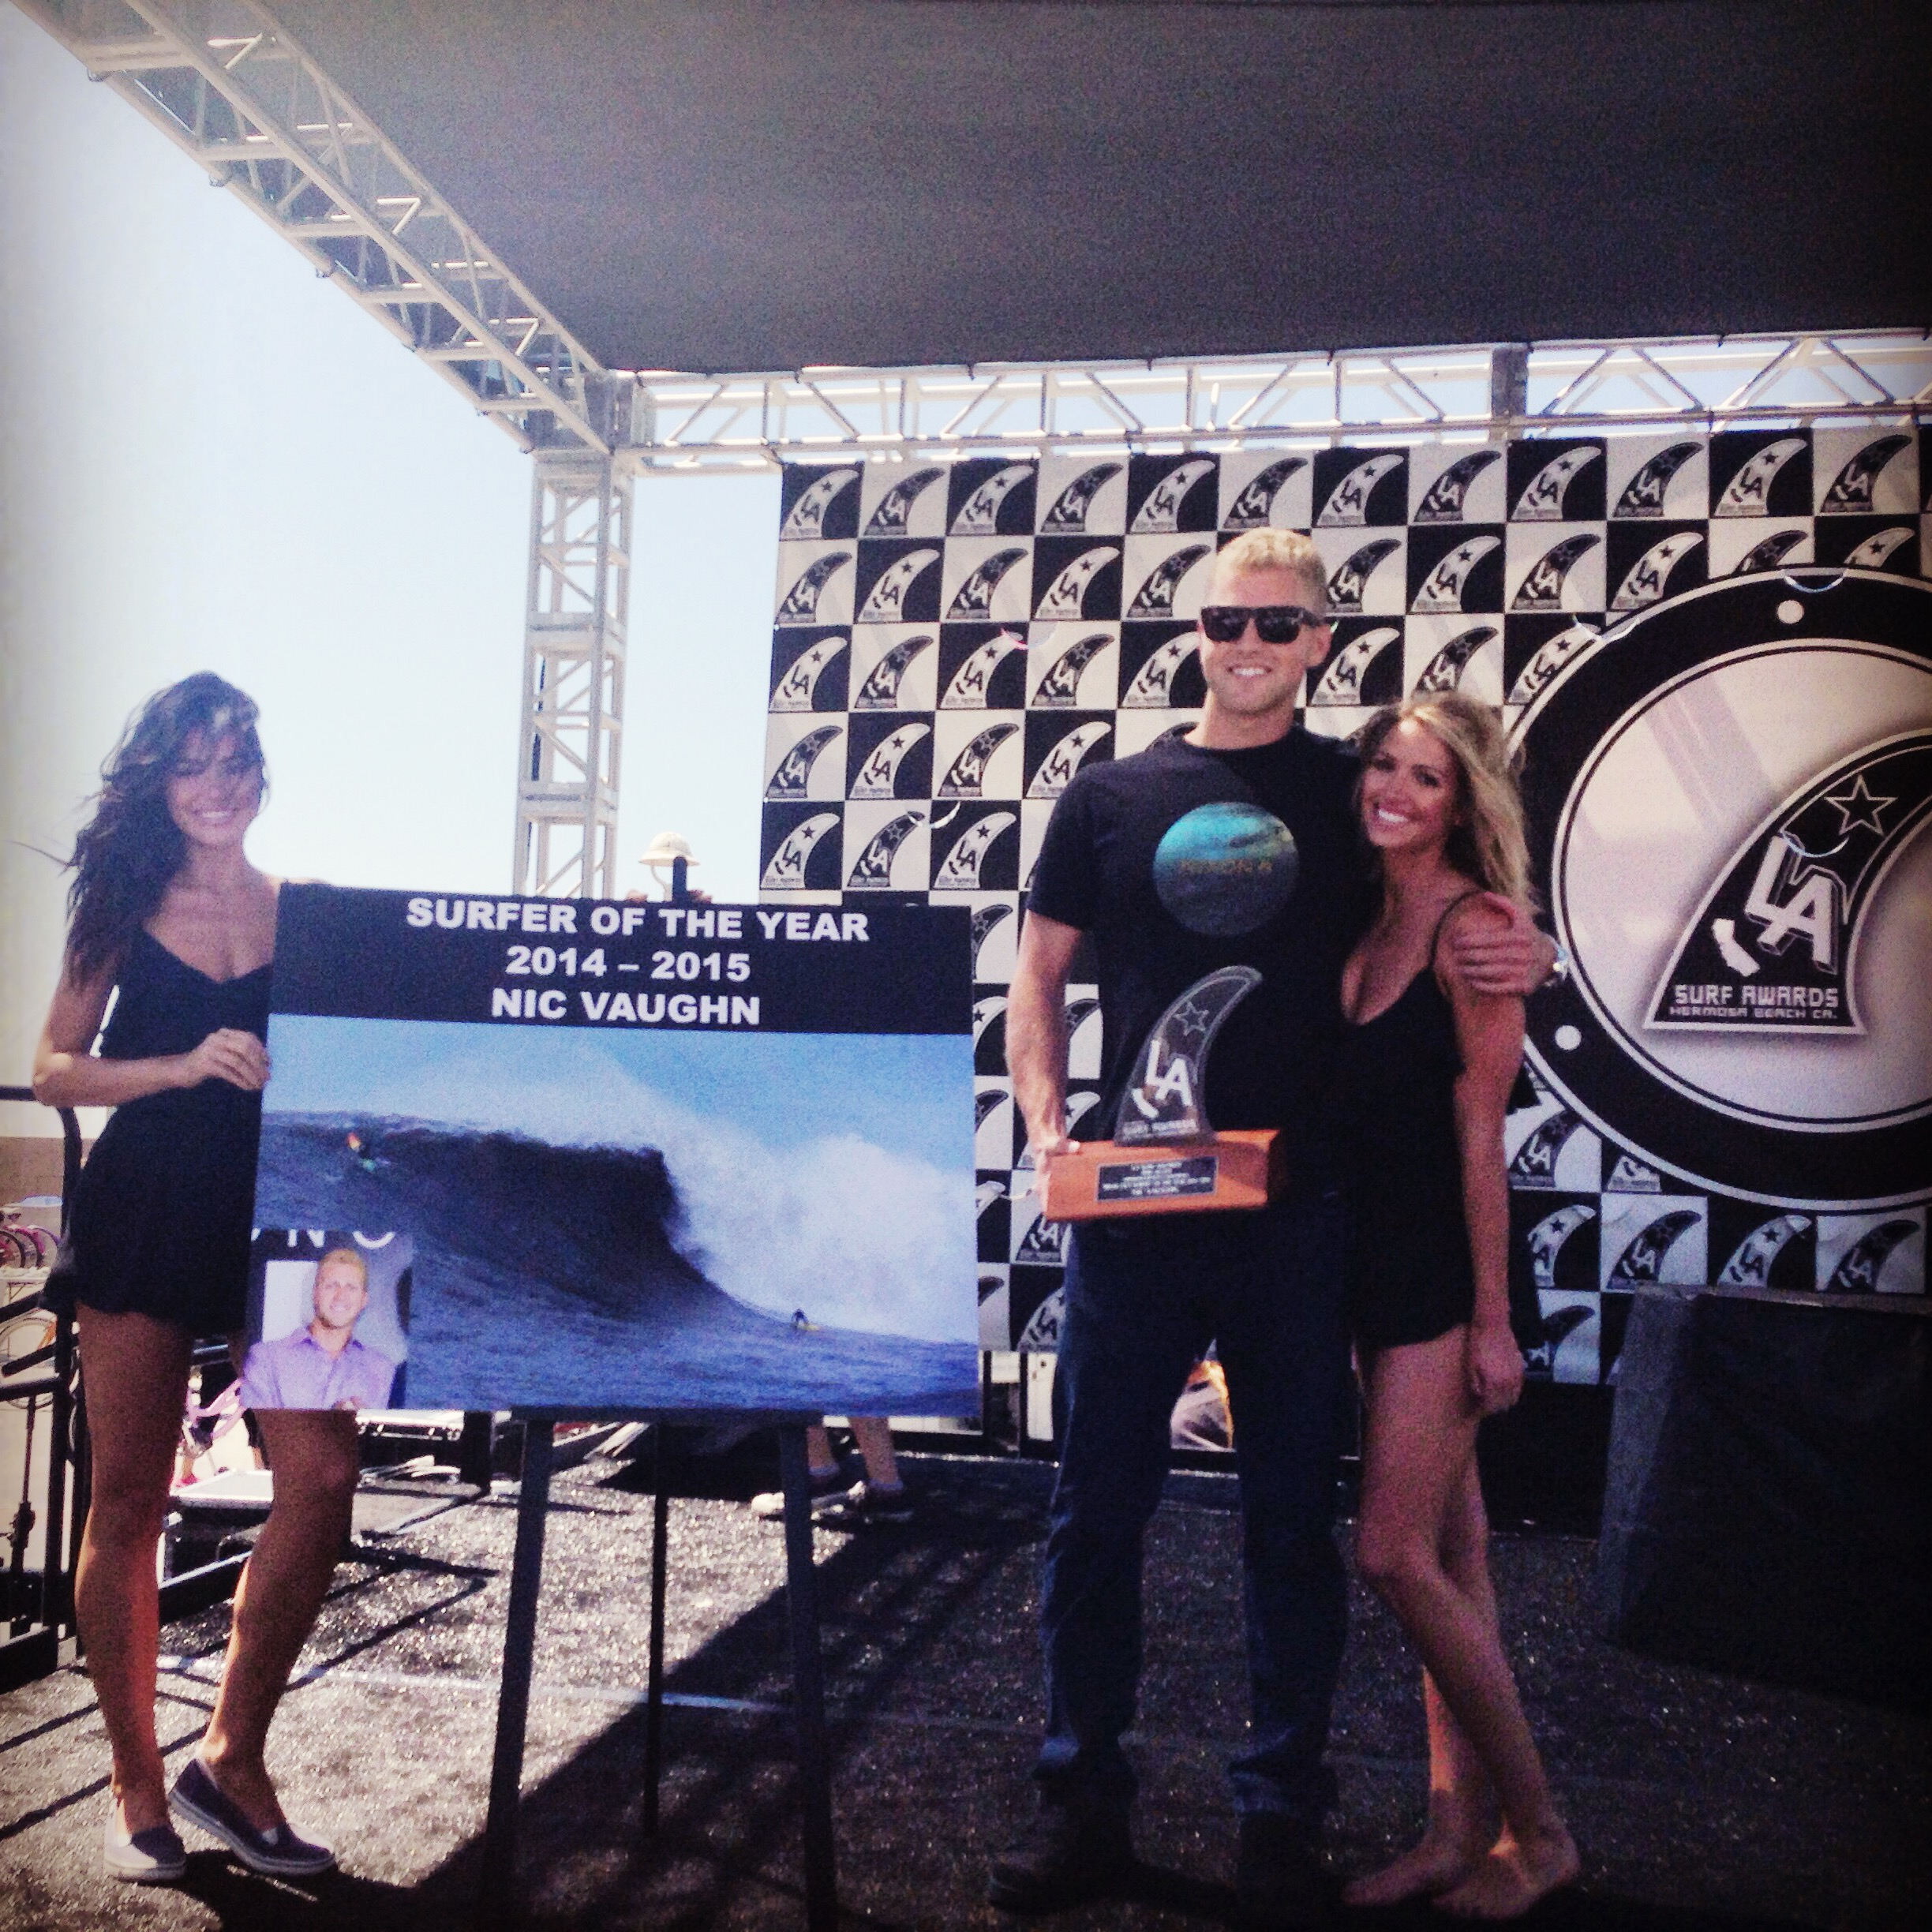 Nic Vaughan - LA Surfer of the Year Awards